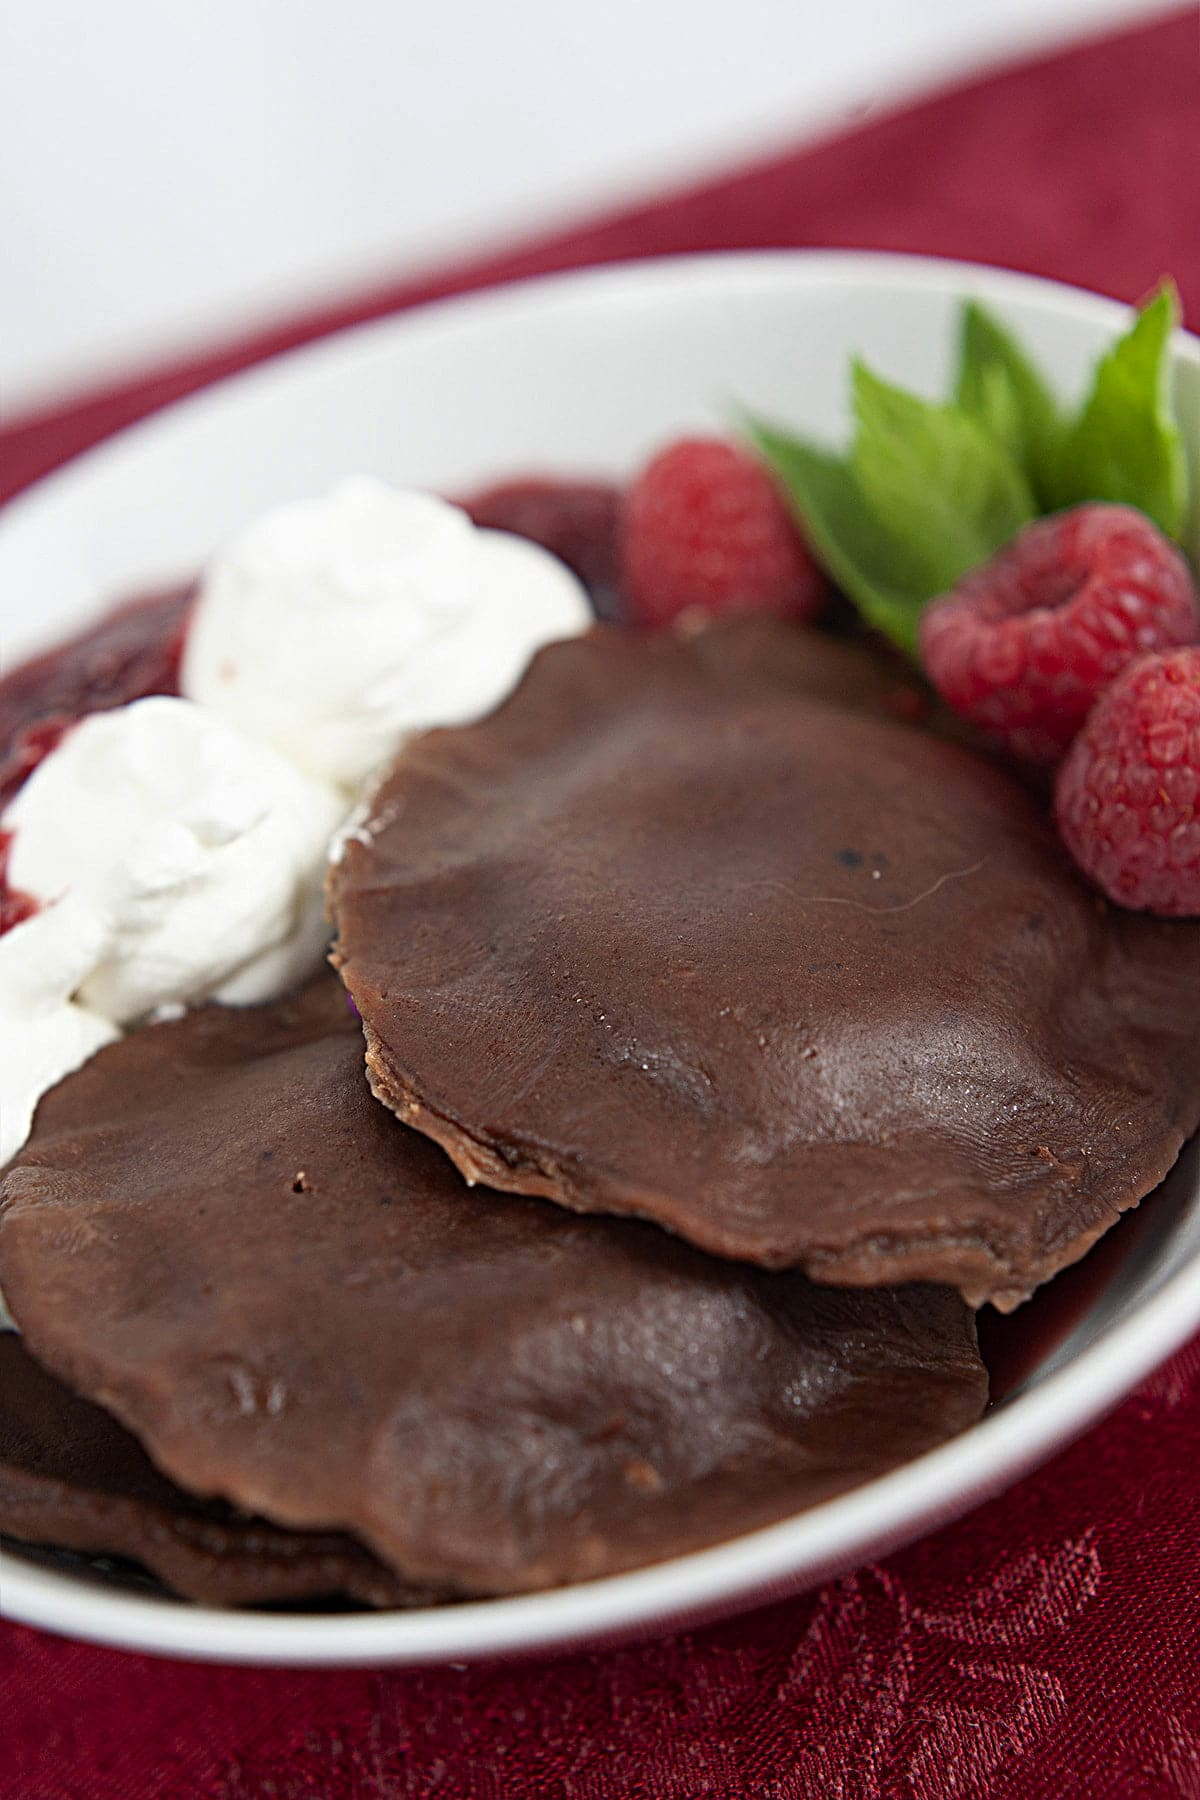 A white bowl holds 2 large chocolate ravioli. There is whipped cream and raspberry sauce on the side, and it is garnished with raspberries and mint.